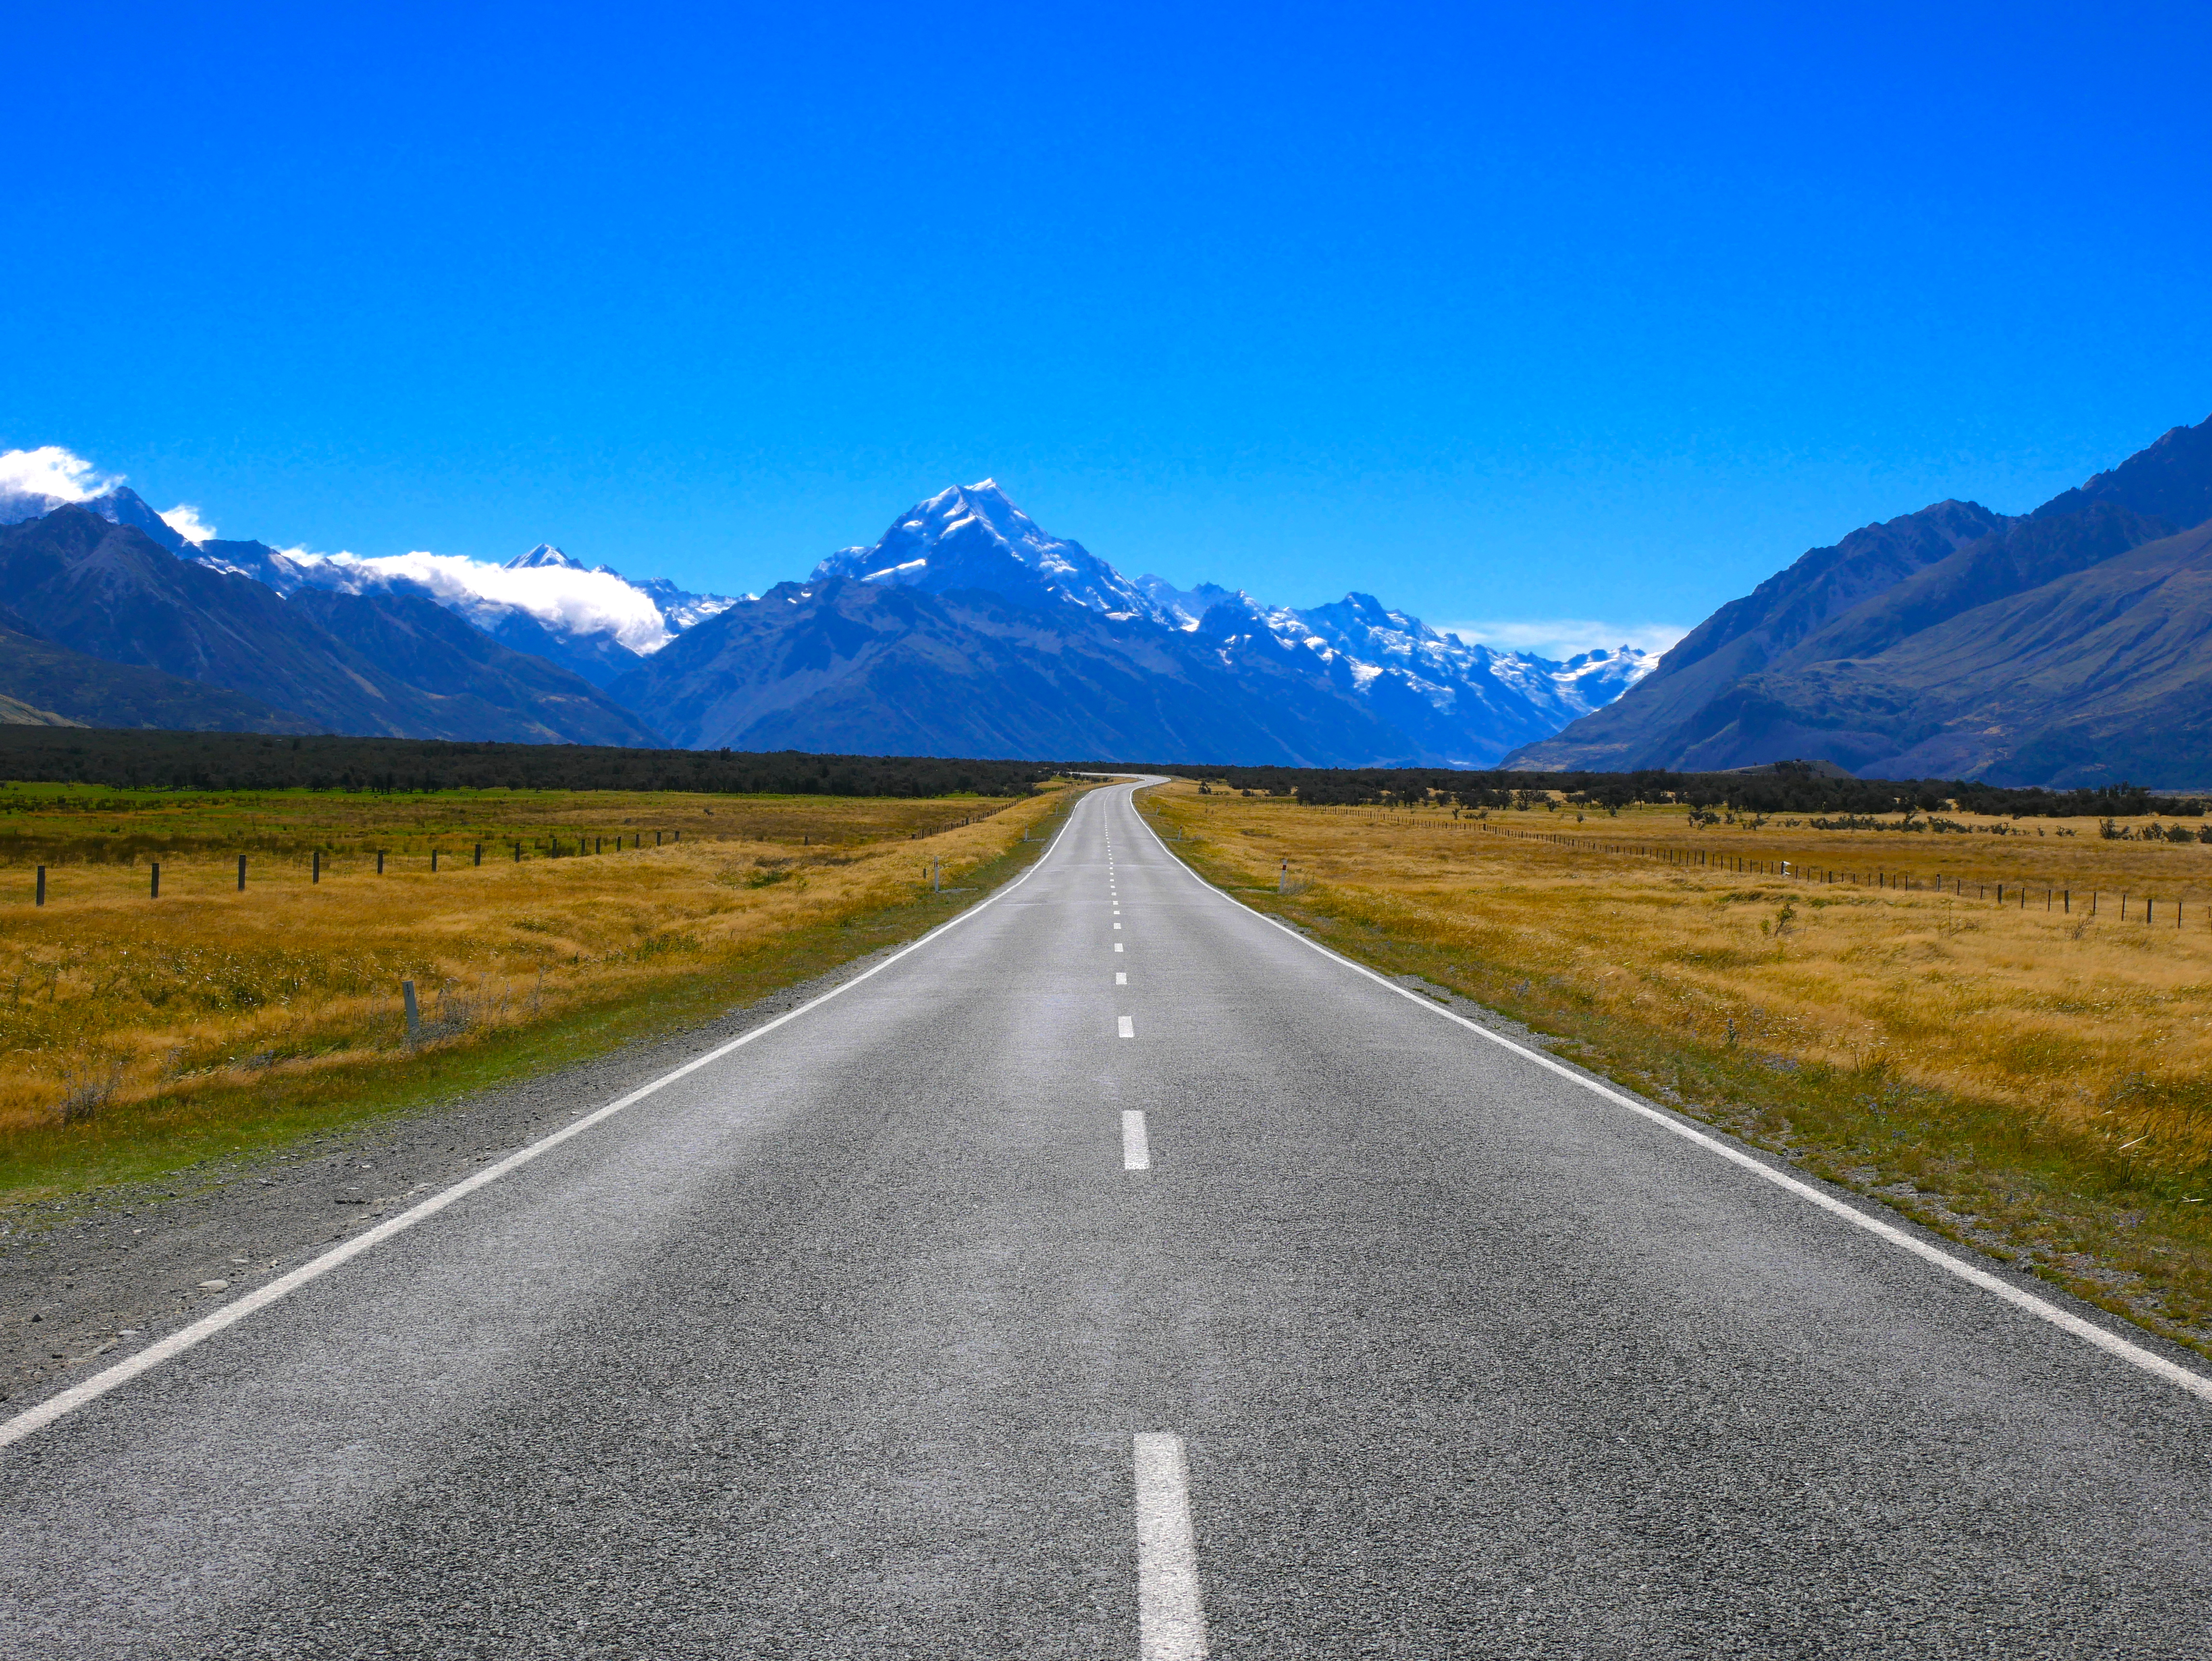 Preparing a road trip in New Zealand (Things to know!)